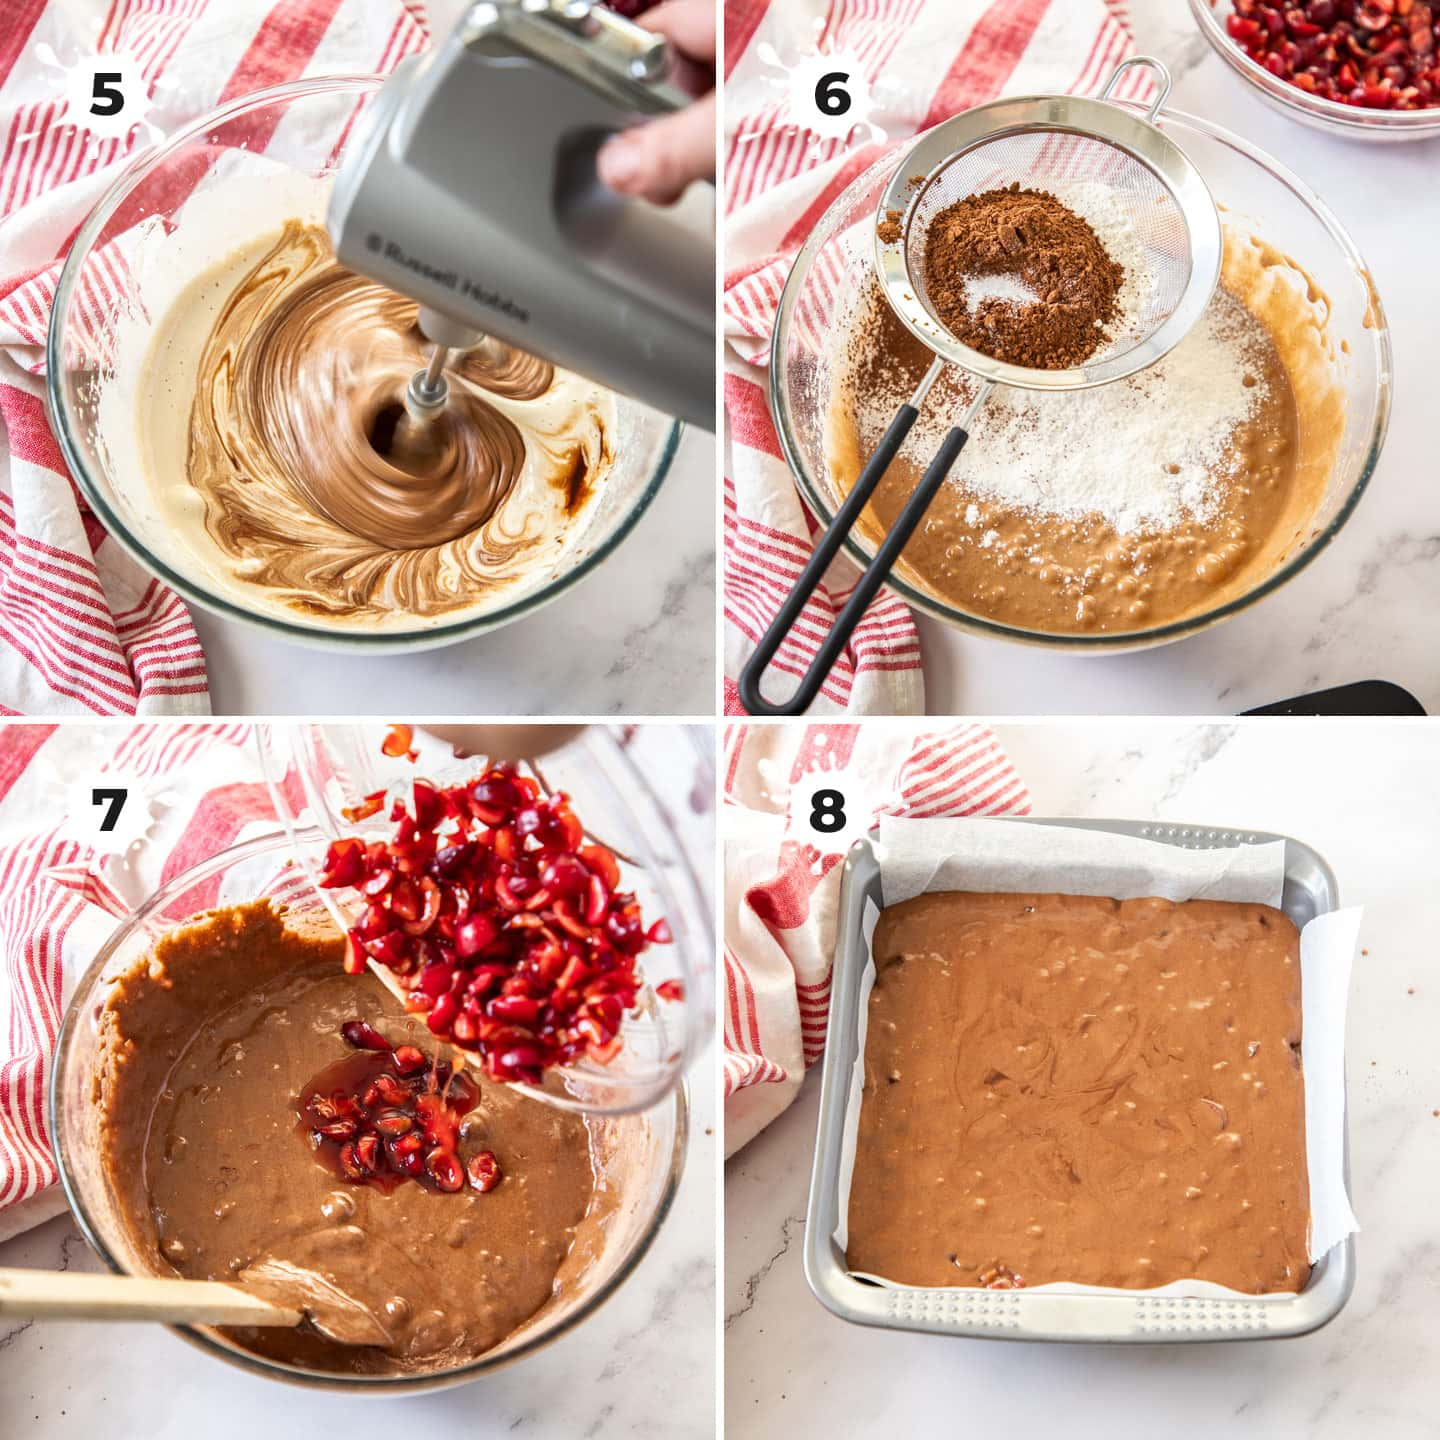 Mixing up batter for cherry brownies